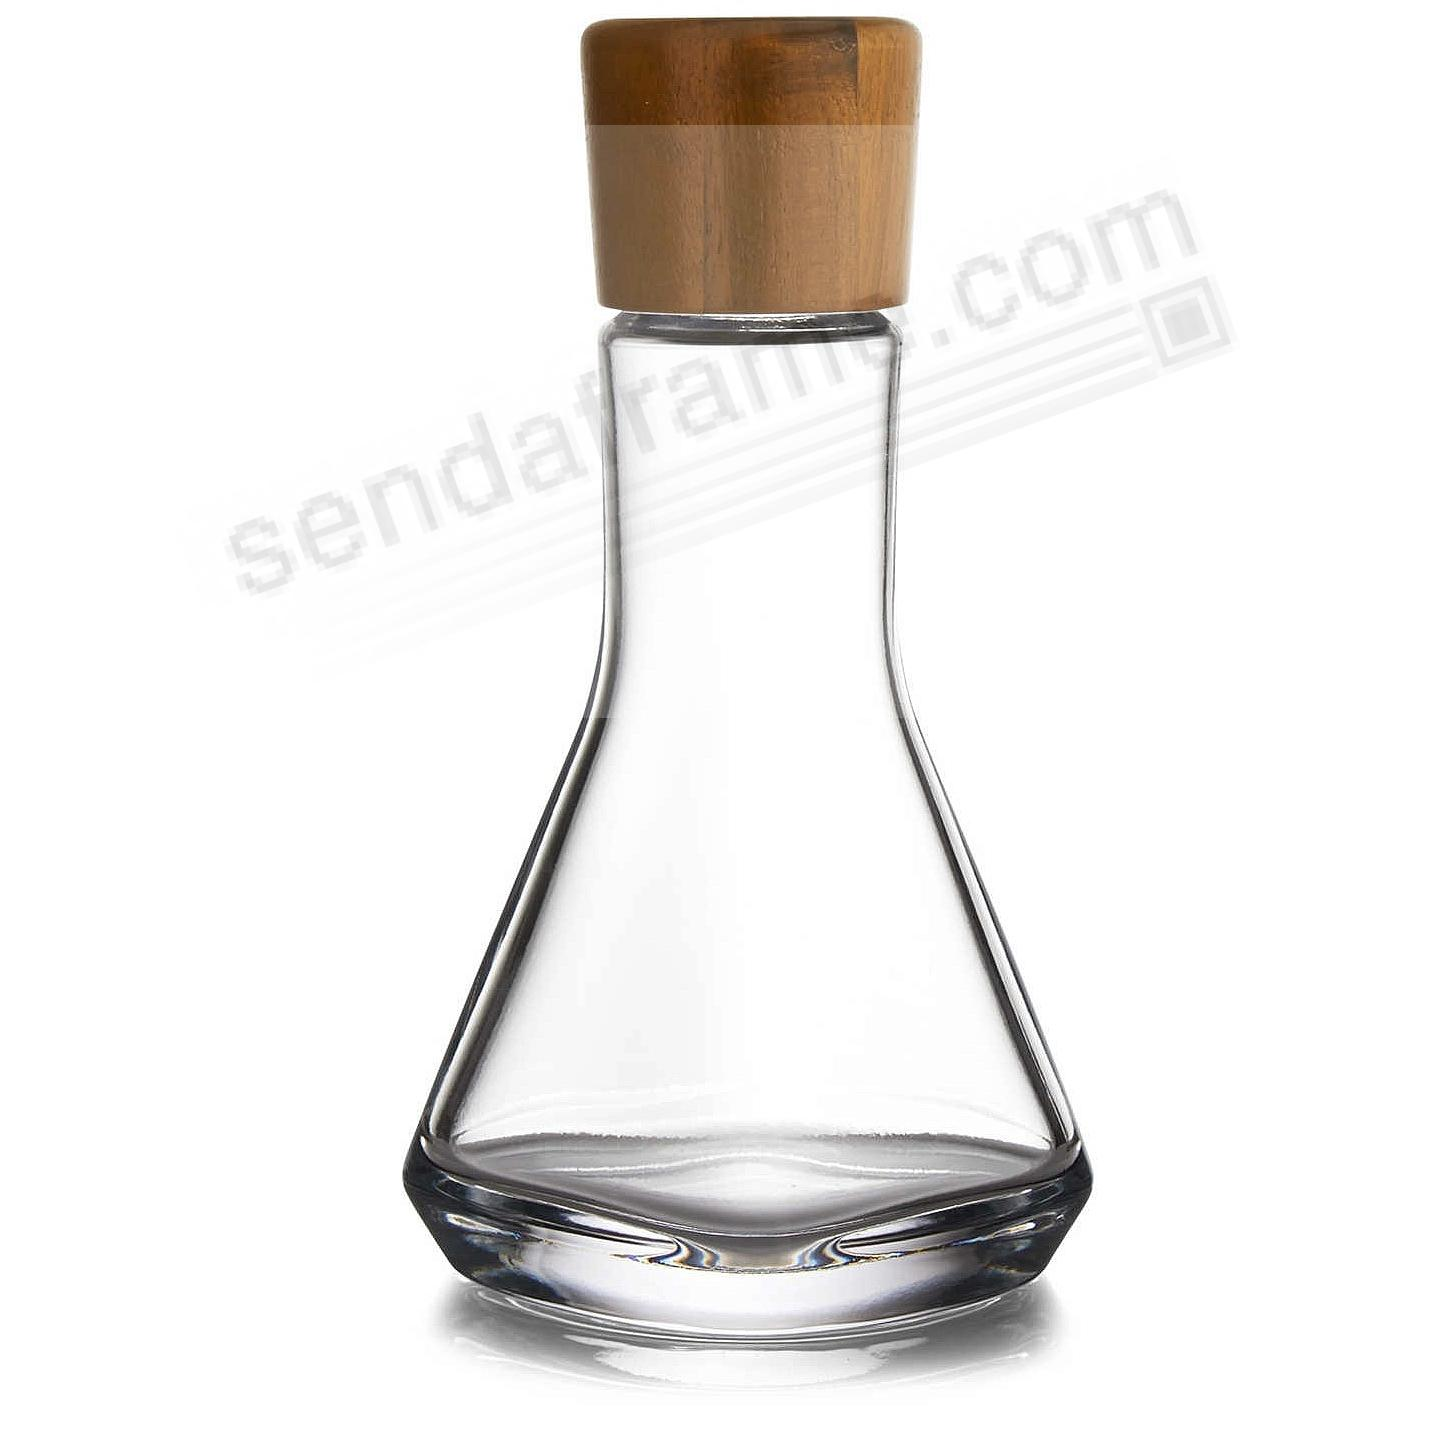 The VIE 10-inch DECANTER crafted by Nambe®